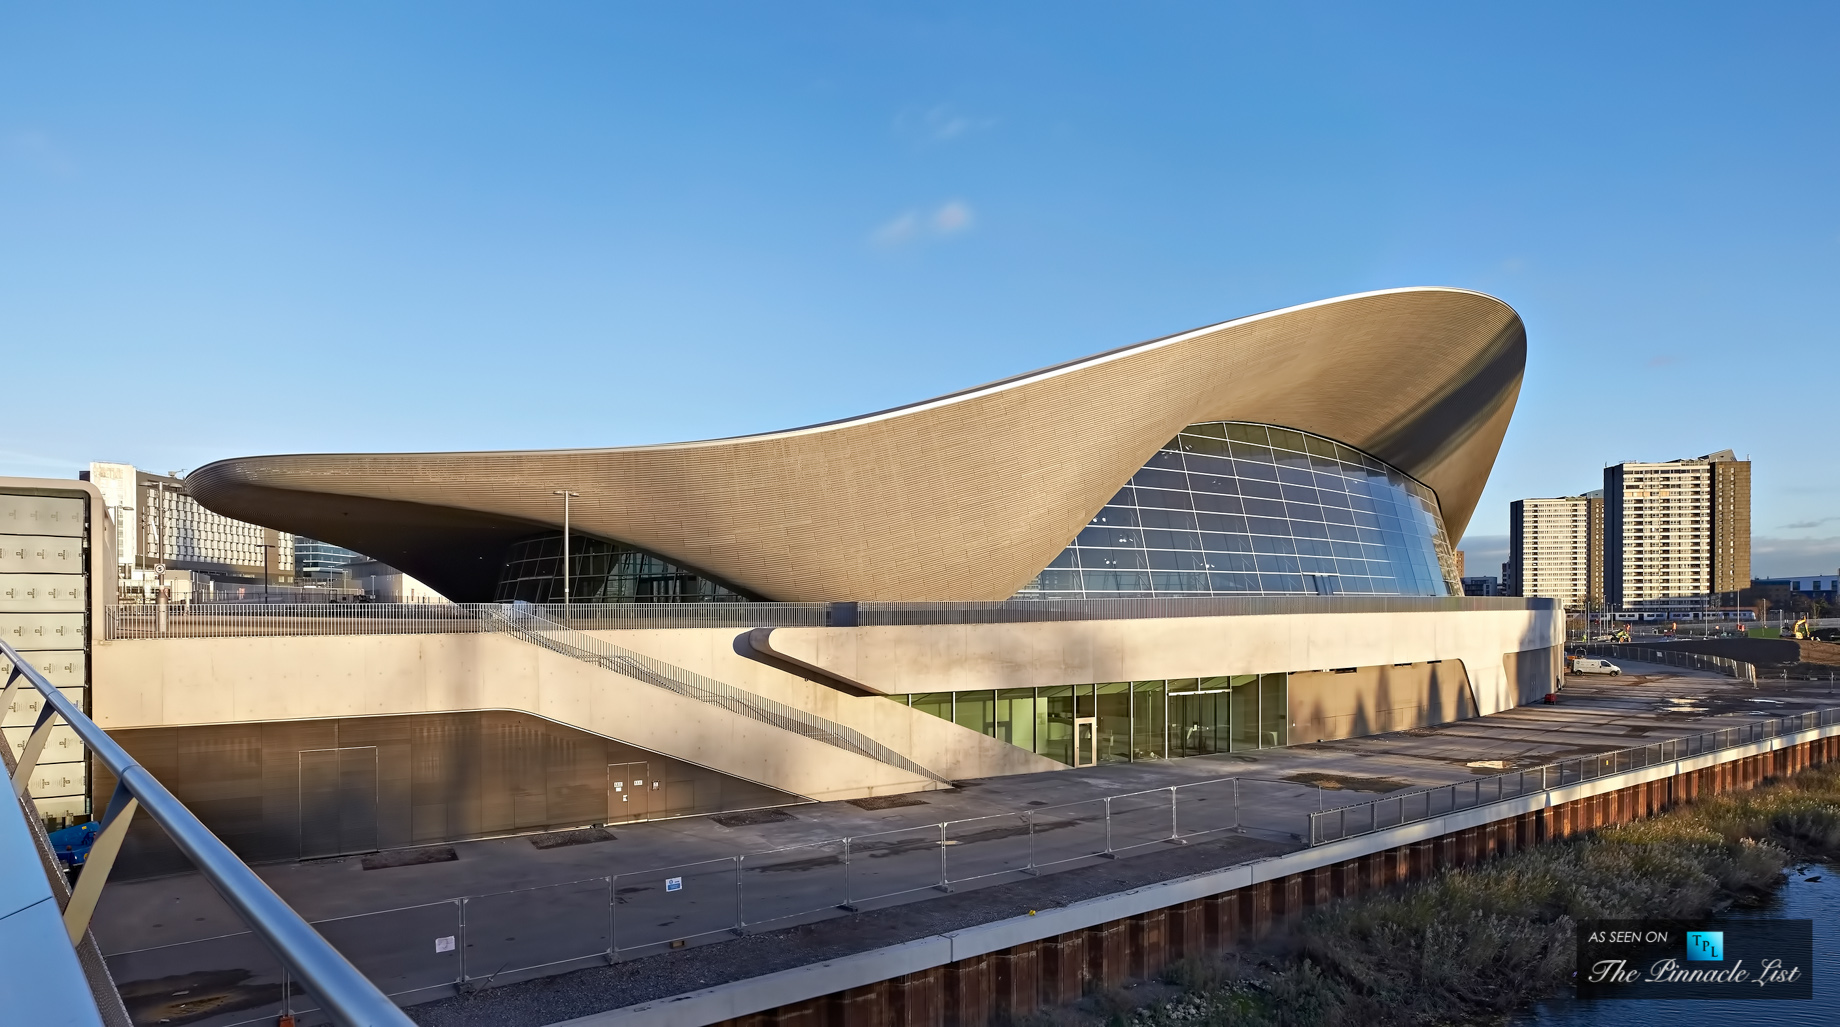 London Aquatic Center - Zaha Hadid Architects